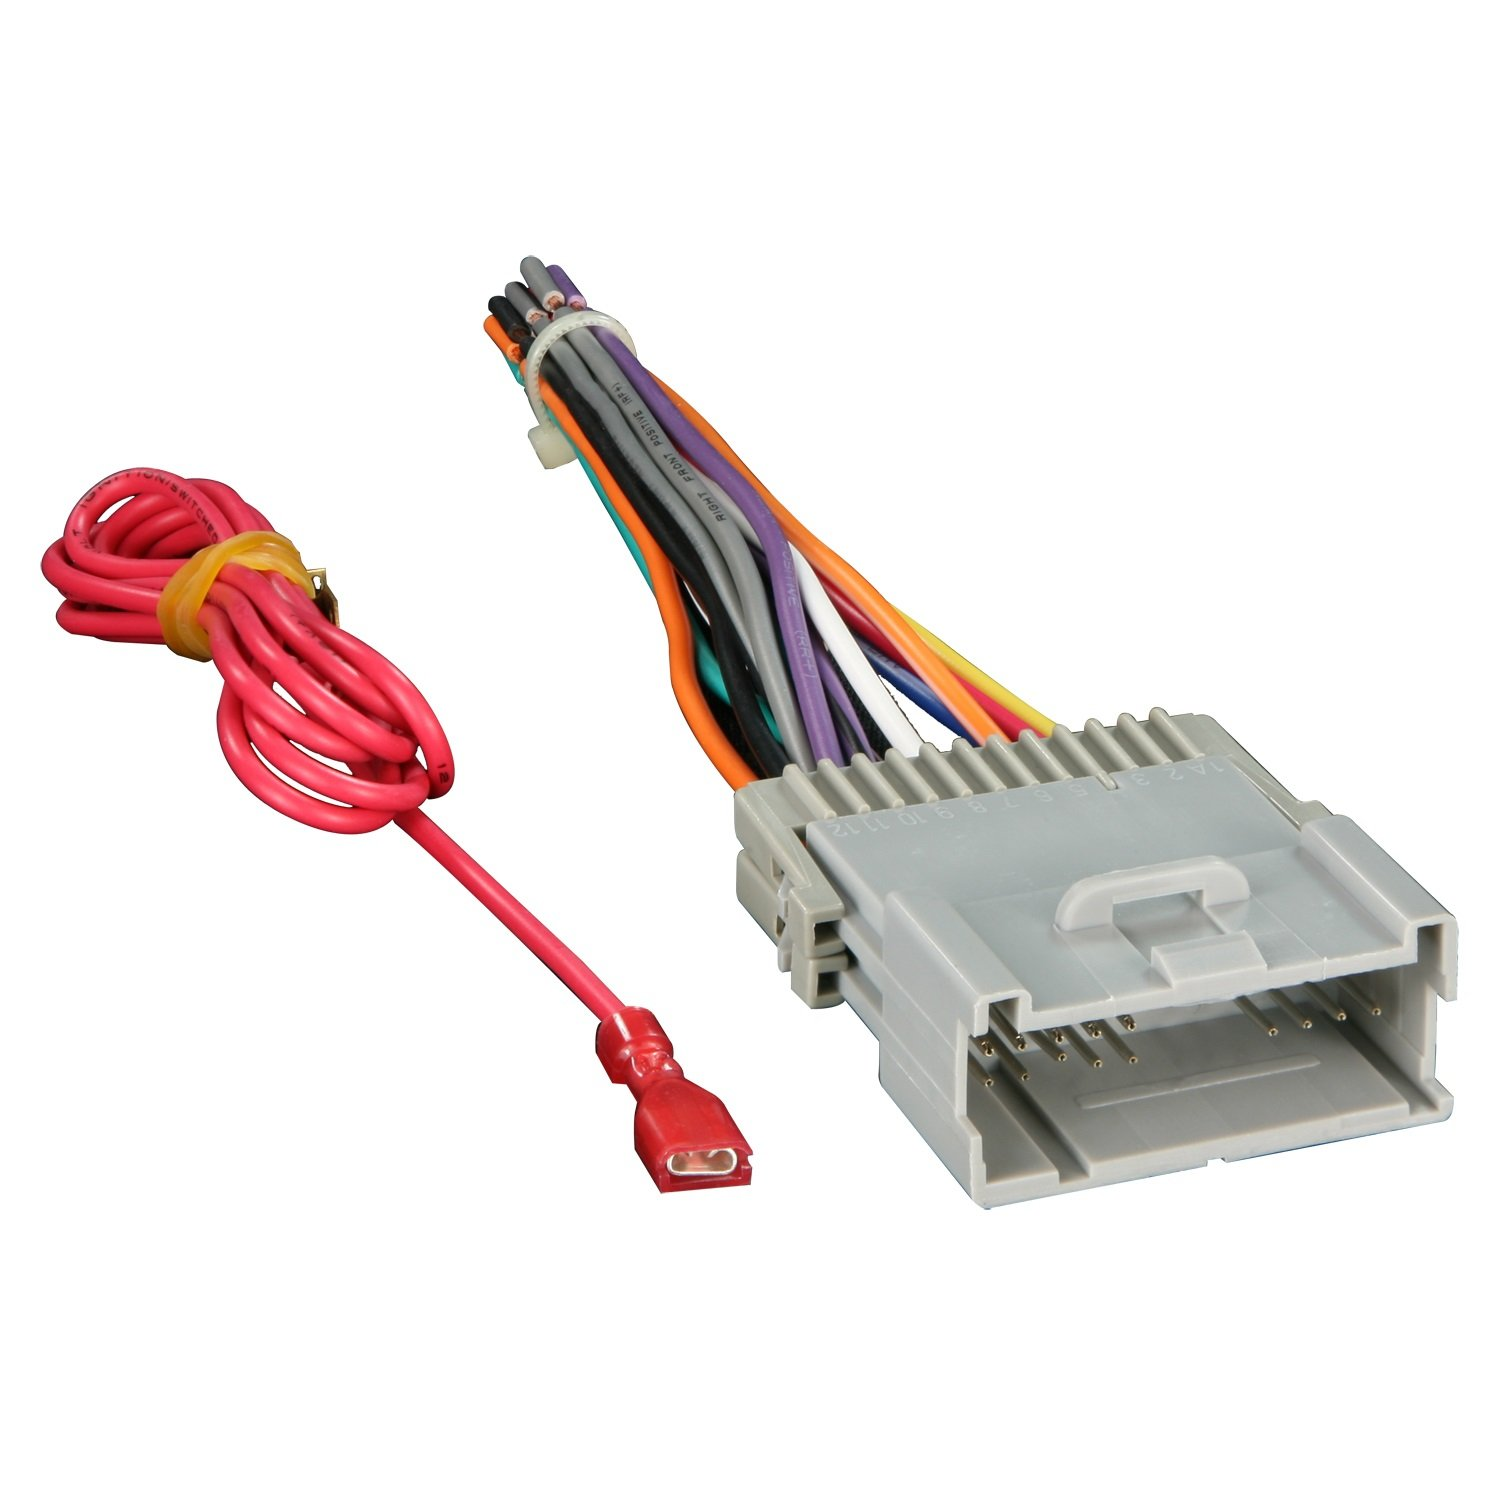 61eewxp9orL._SL1500_ amazon com metra 70 2003 radio wiring harness for gm 98 08 wiring harness pins at mifinder.co